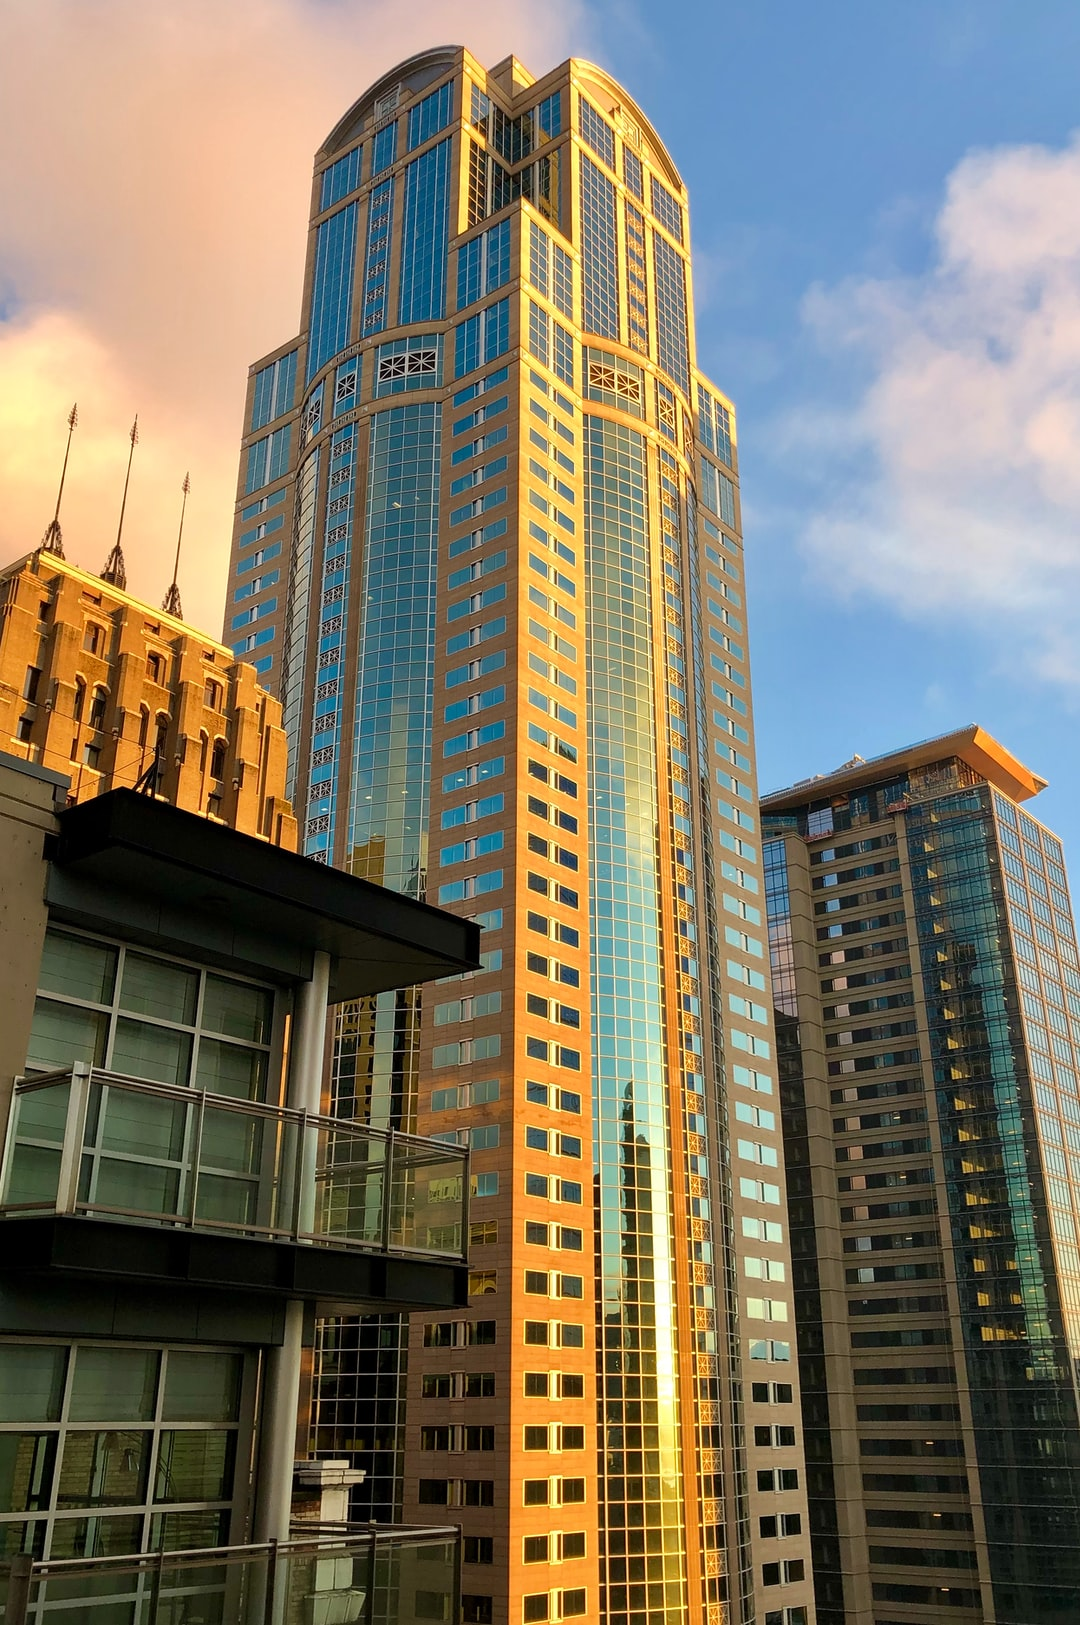 """Left to right, ornamental spires atop the Seattle Tower (formerly Northern Life Tower), 1201 Third Avenue Building (formerly Washington Mutual (WaMu) Tower), and the newly constructed """"2 + U"""" building at 2nd and University.  In the foreground, left, the balconies of a modern penthouse atop The Cobb Apartments."""